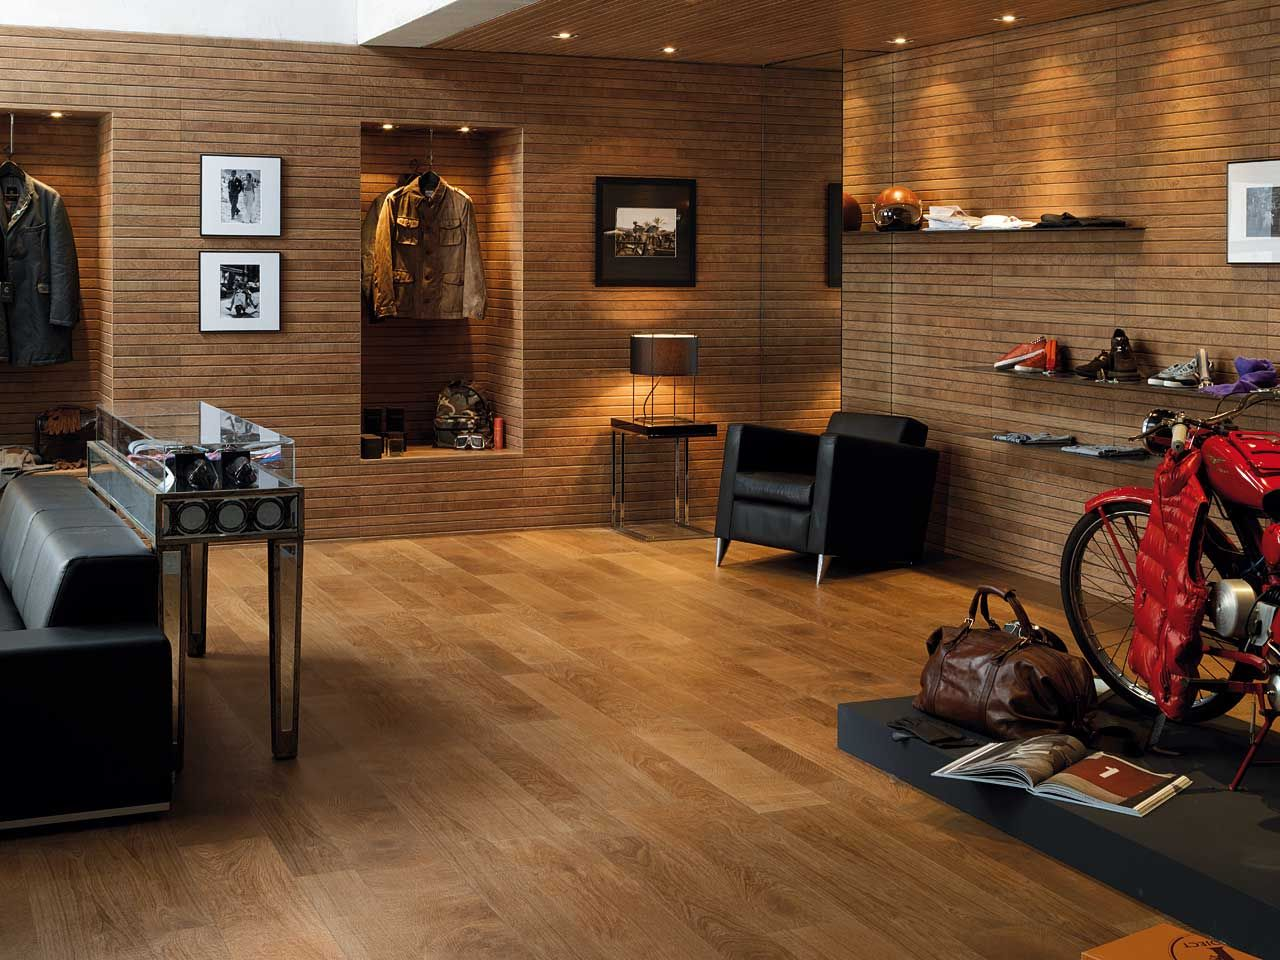 Ceramic Parquet Is Currently A Highly Valued Option When Choosing A Flooring Material Porcelanosa Group Include Parquet Ceramico Azulejos Efecto Madera Suelos